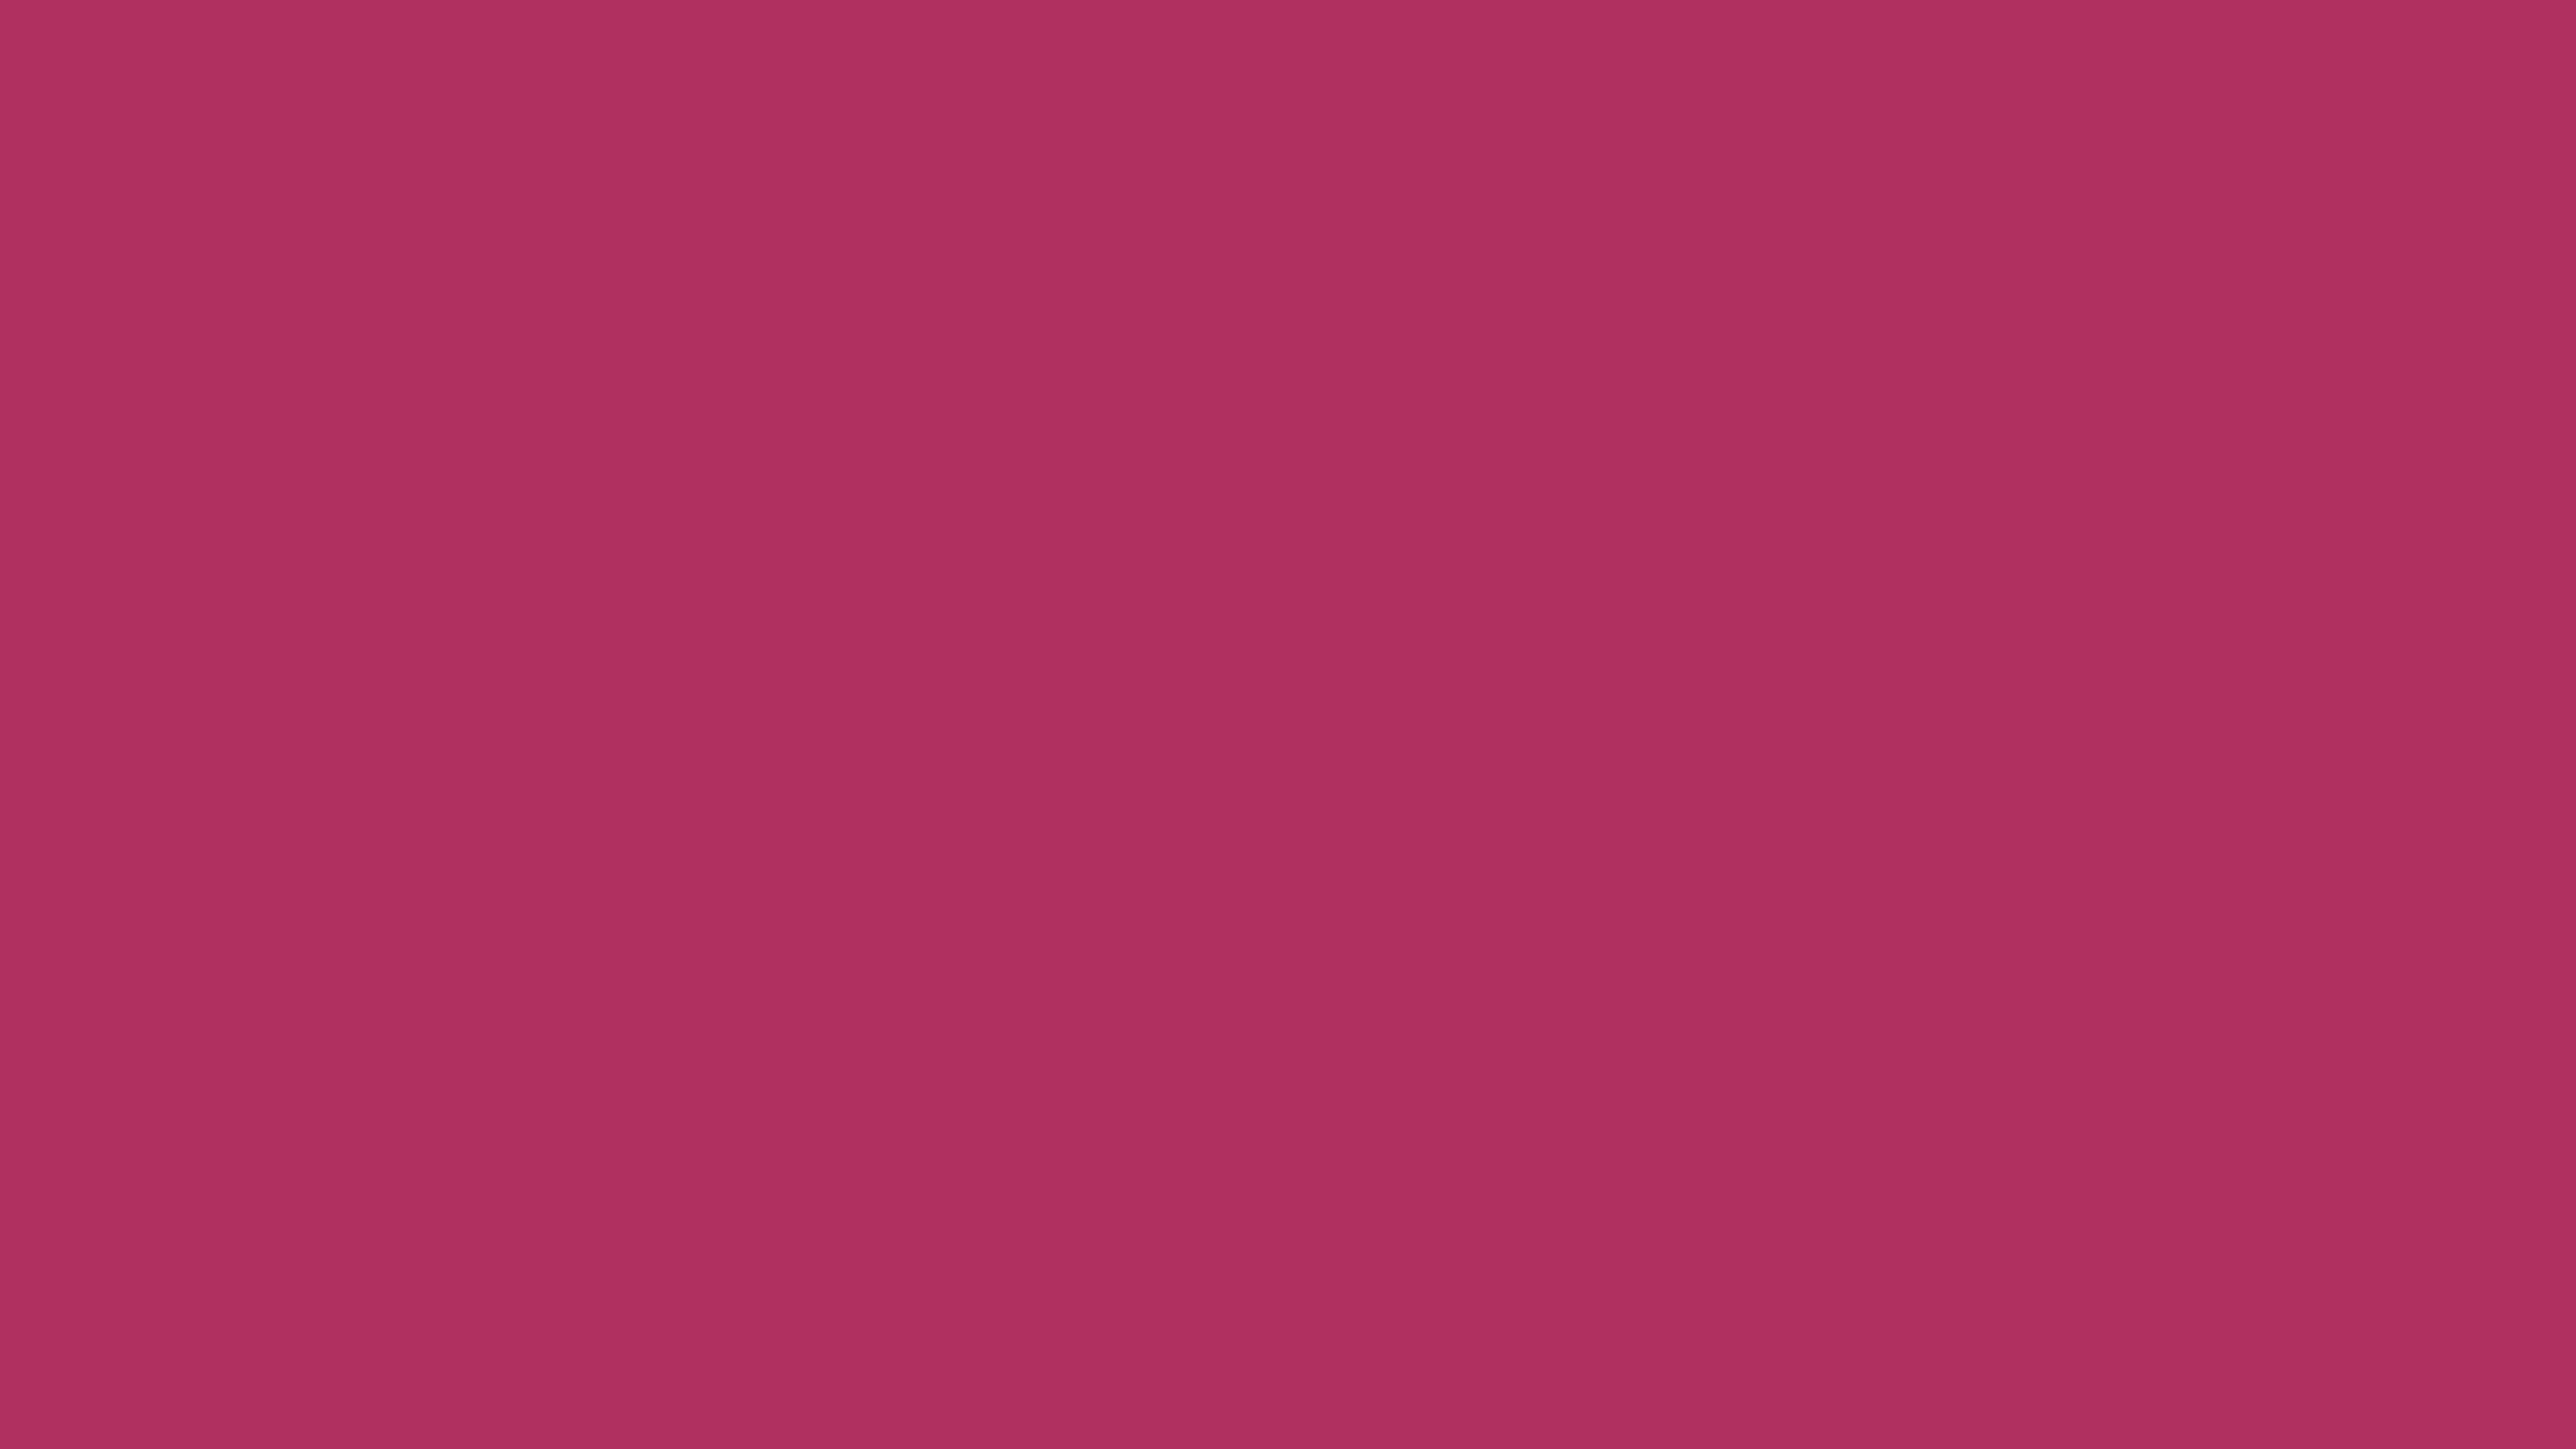 5120x2880 Maroon X11 Gui Solid Color Background